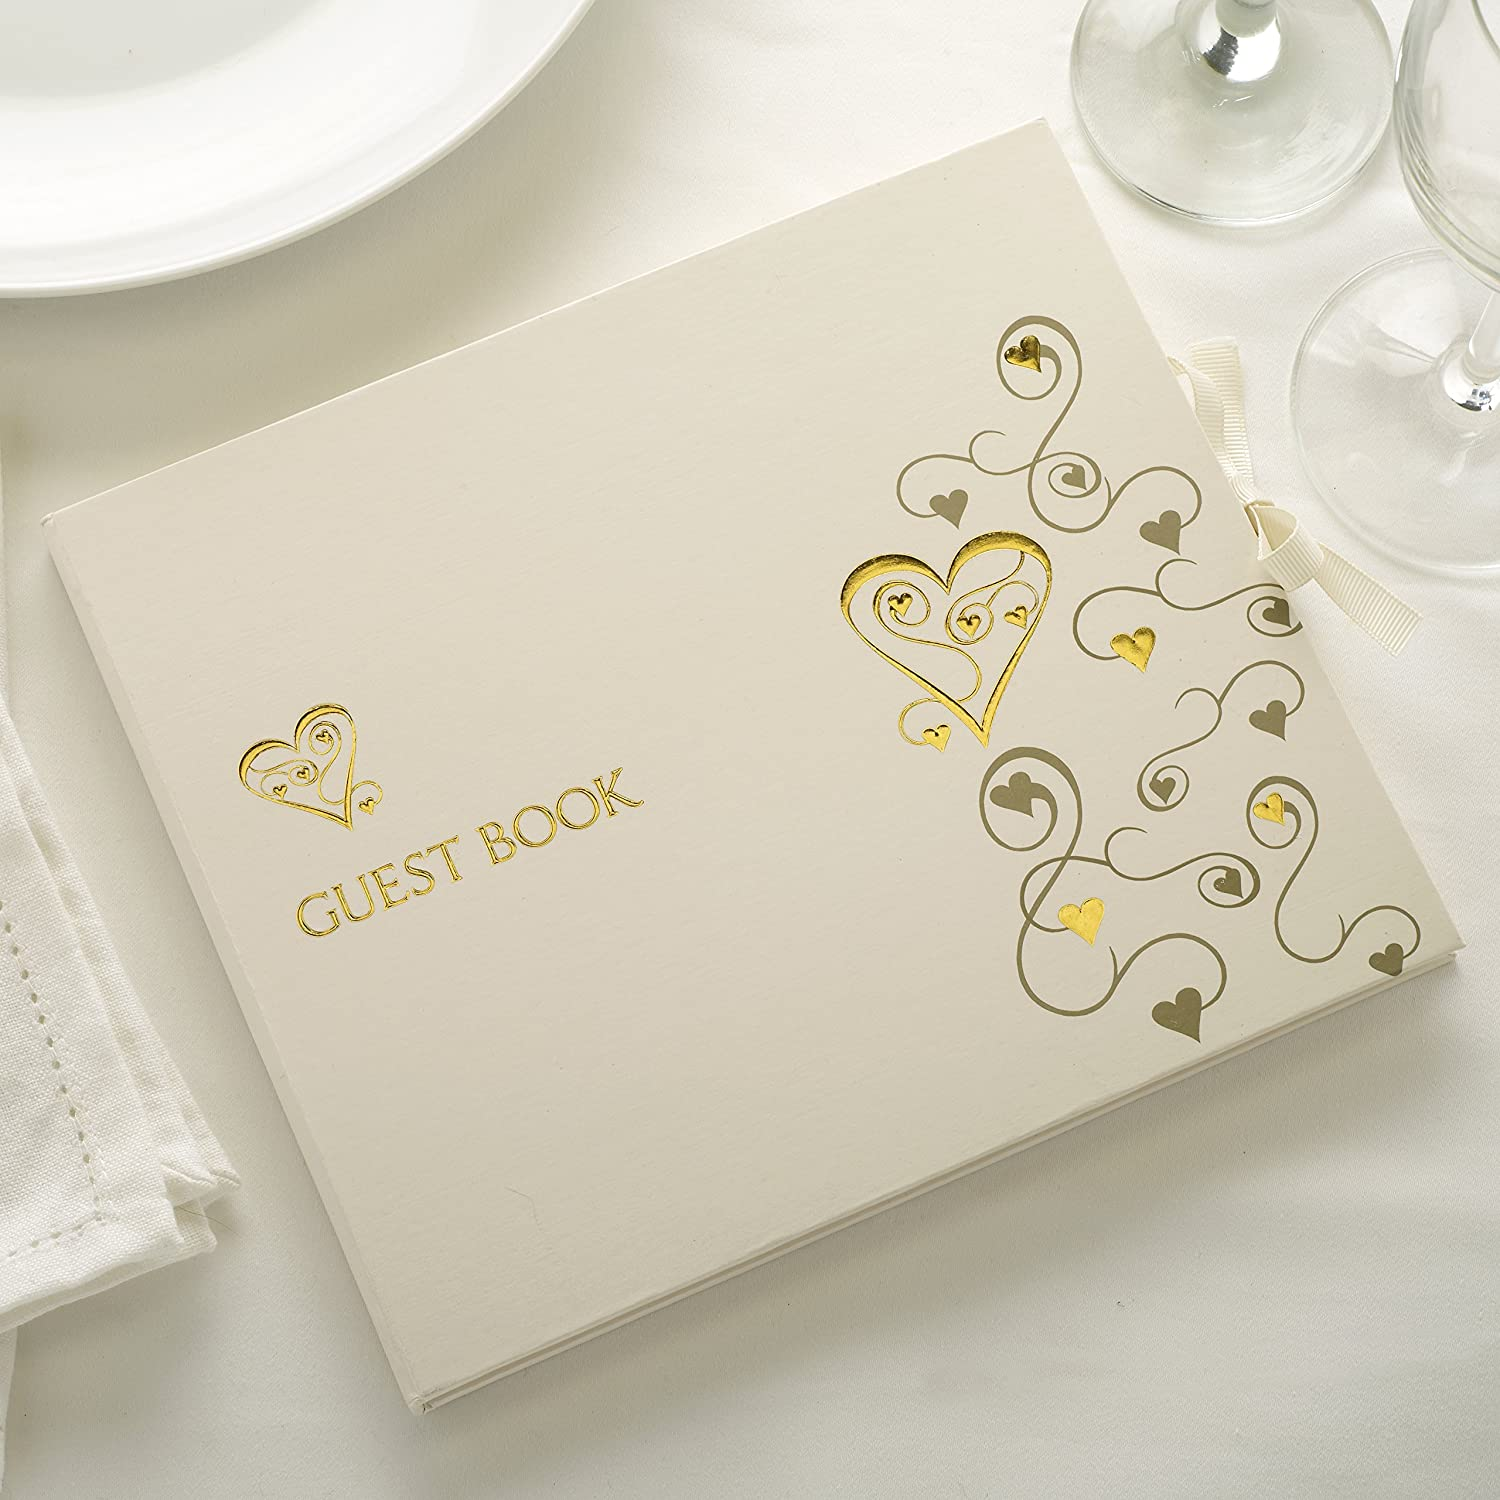 CSC Imports Guest book in Ivory with Gold Heart design